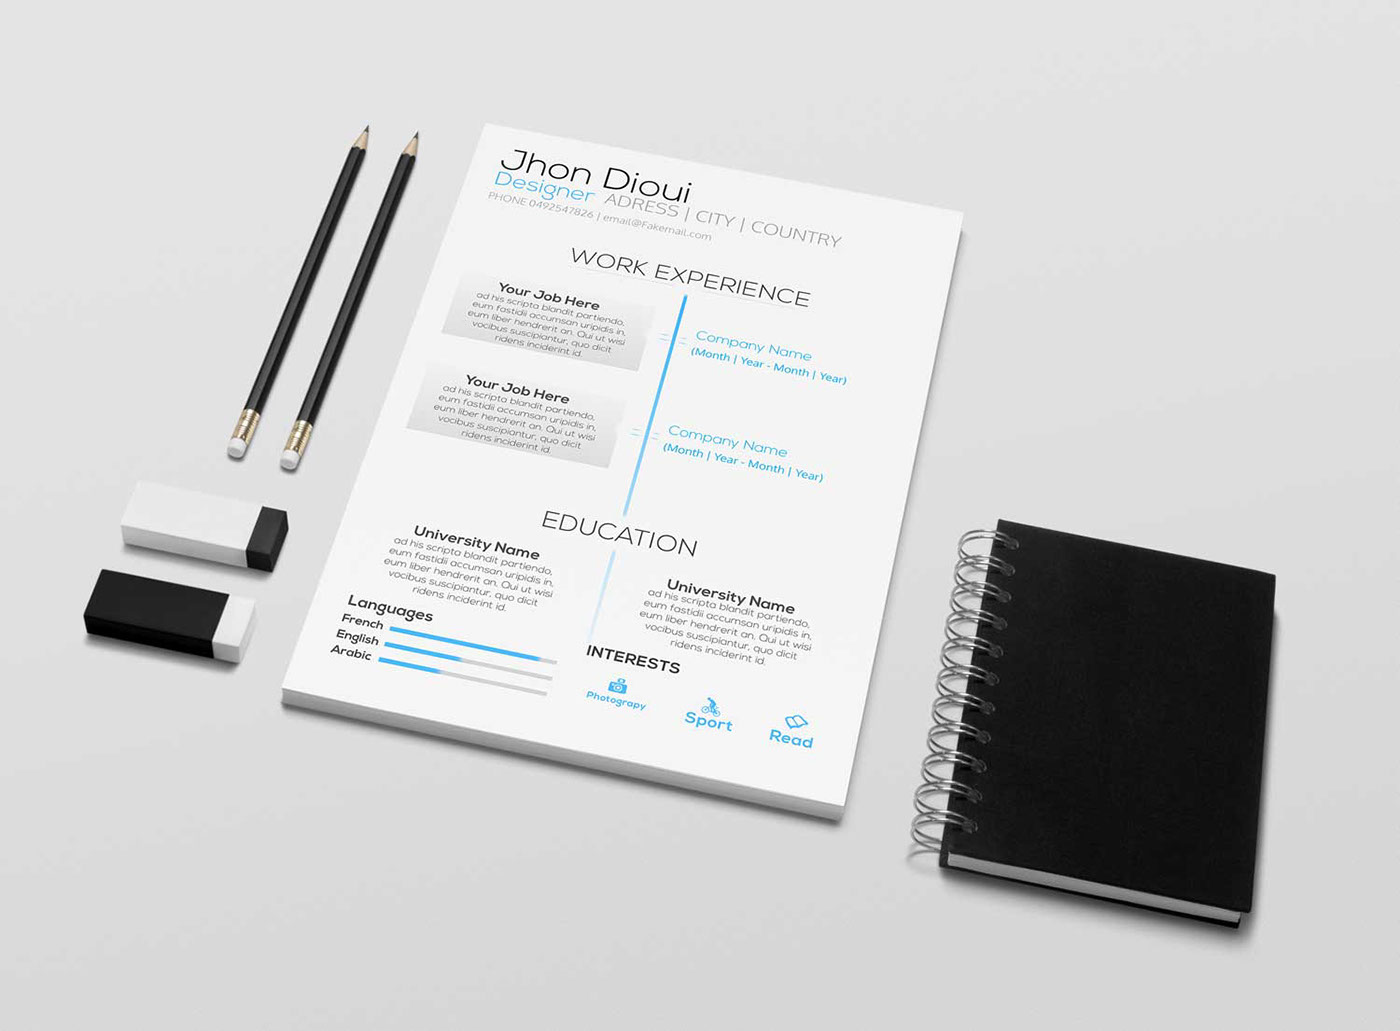 Free resume template psd on Behance